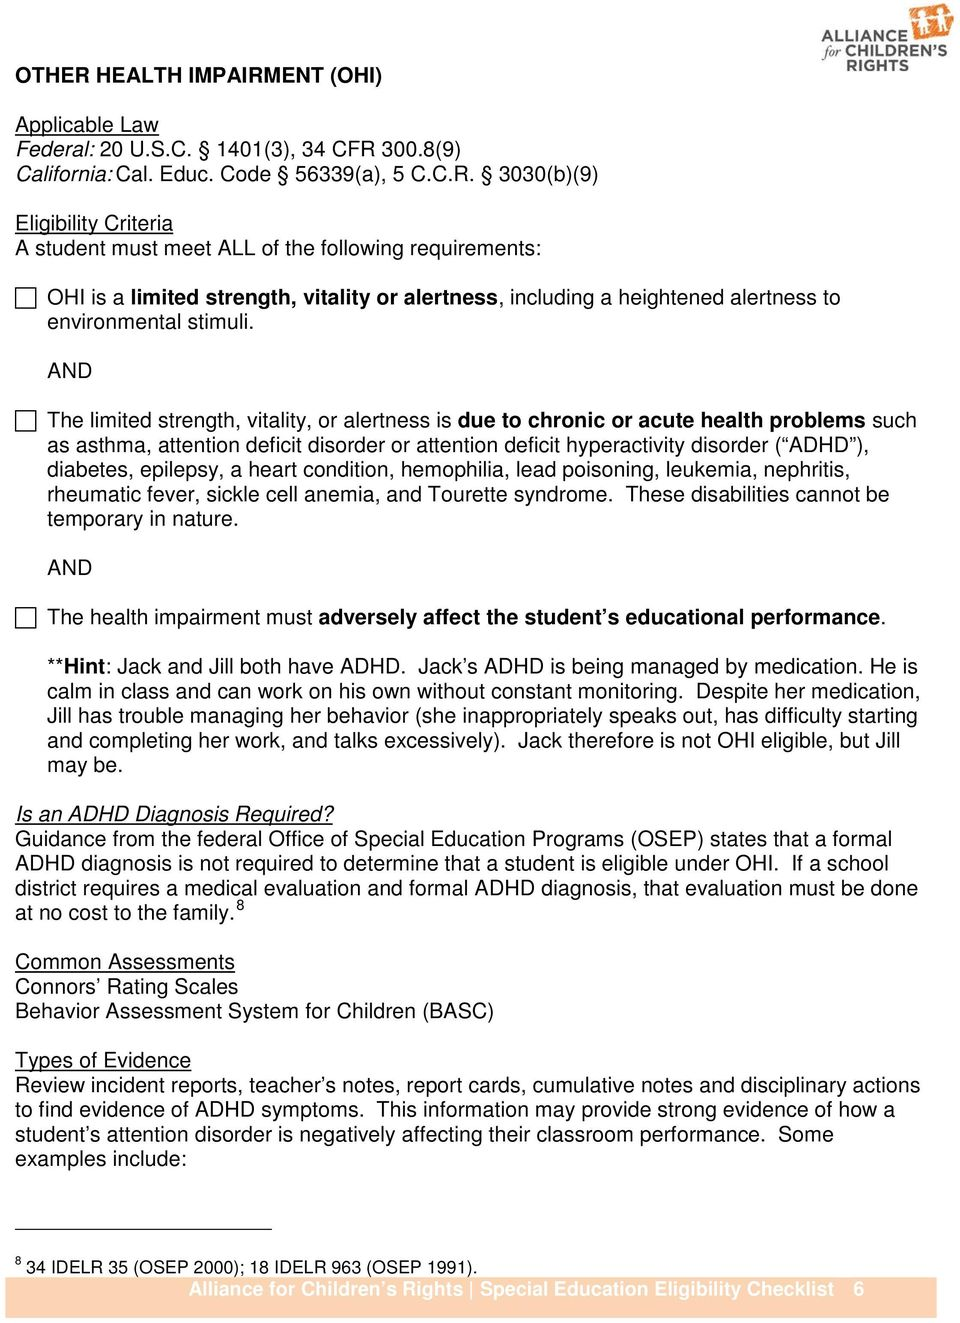 Special Education Eligibility And Dsm 5 >> Special Education Eligibility Checklist Pdf